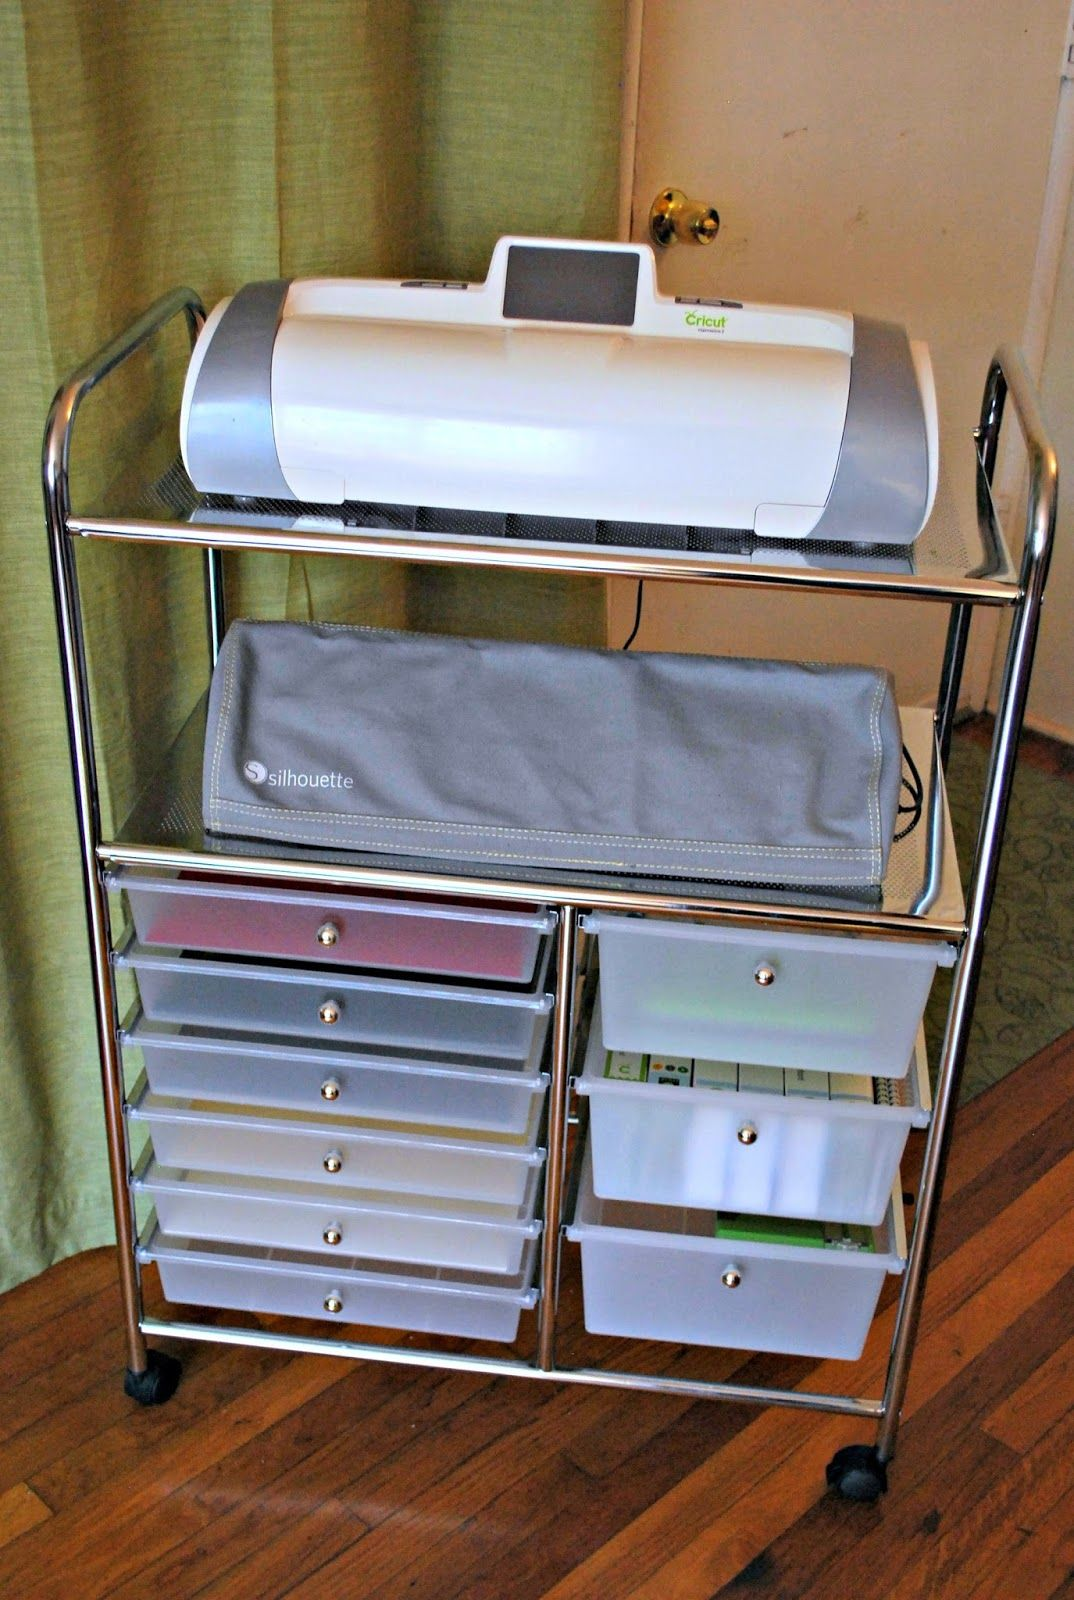 Ordinaire Crafty Creations With Shemaine: A Fabulous Cricut U0026 Silhouette Storage Find